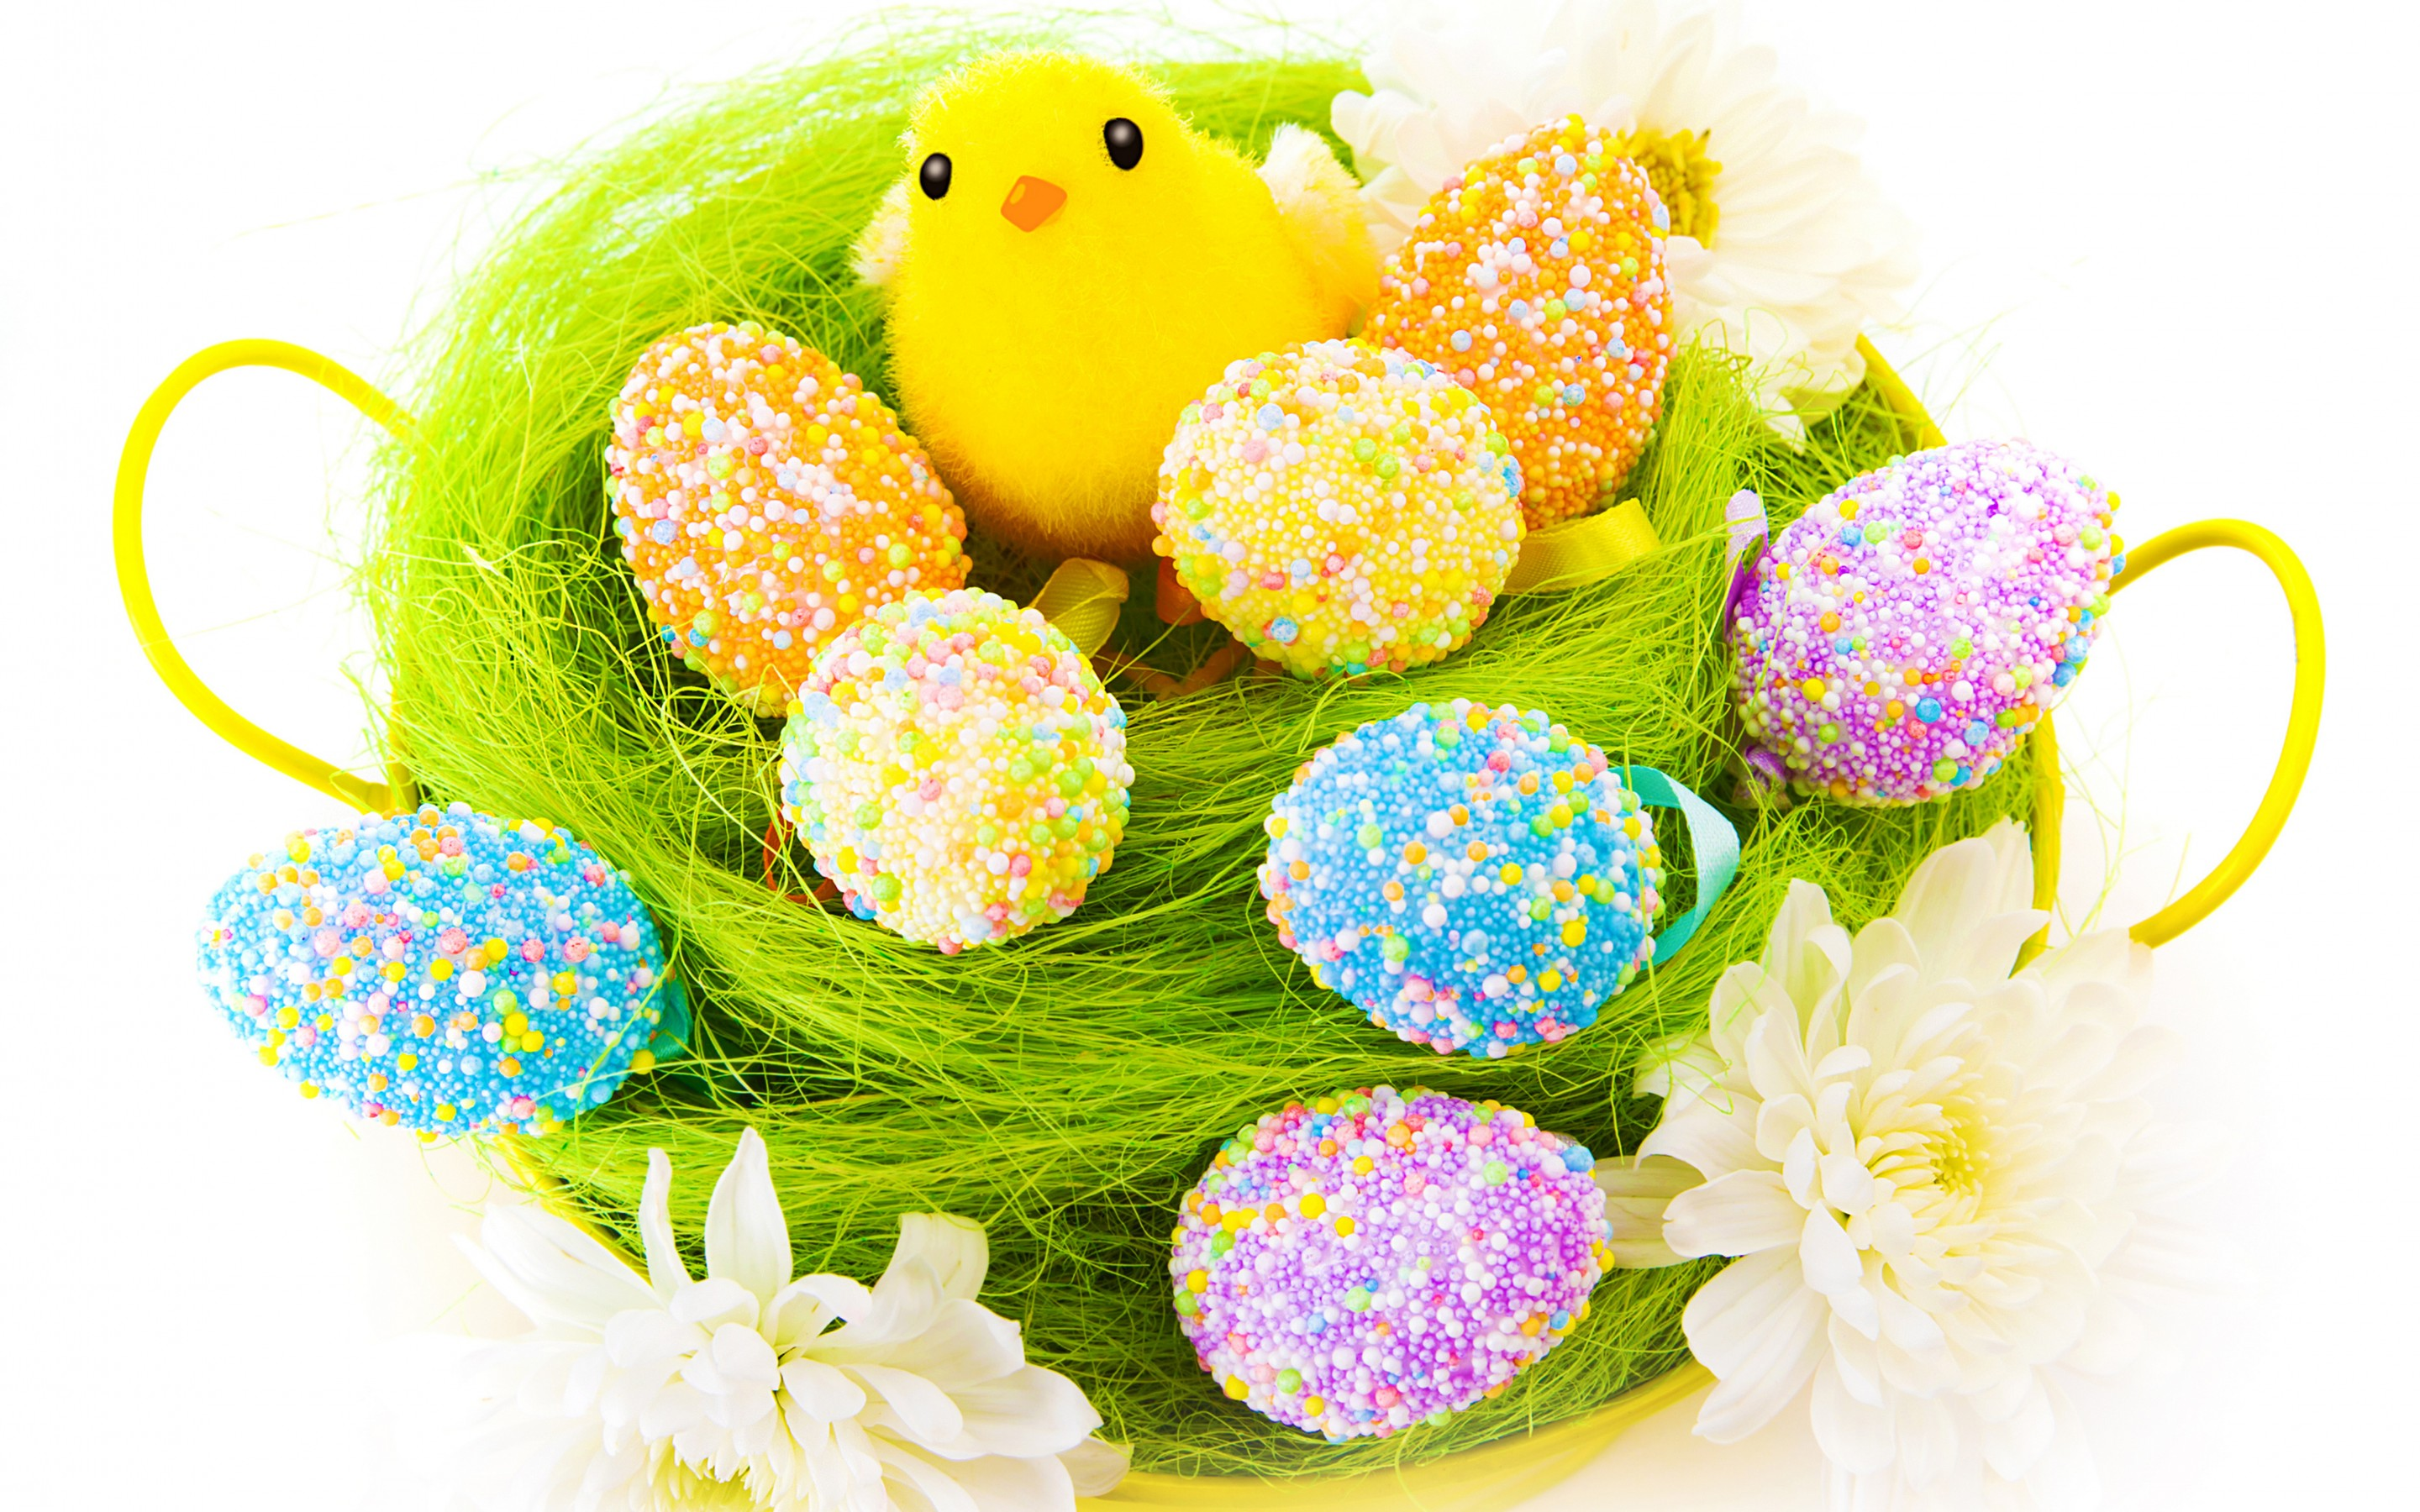 Hd wallpaper easter - Hd Wallpaper Background Id 410314 2880x1800 Holiday Easter